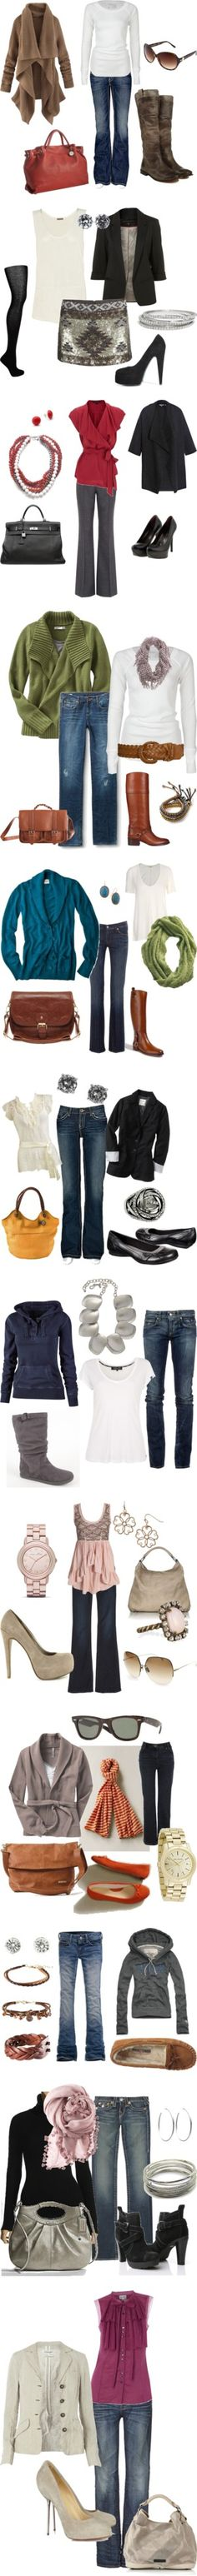 Fall outfits: layering made easy. See how a good cardi/blazer can make any outfit? Cute Fall Outfits, Fall Winter Outfits, Autumn Winter Fashion, Casual Outfits, Classy Outfits, Style Work, Mode Style, Mode Outfits, Fashion Outfits